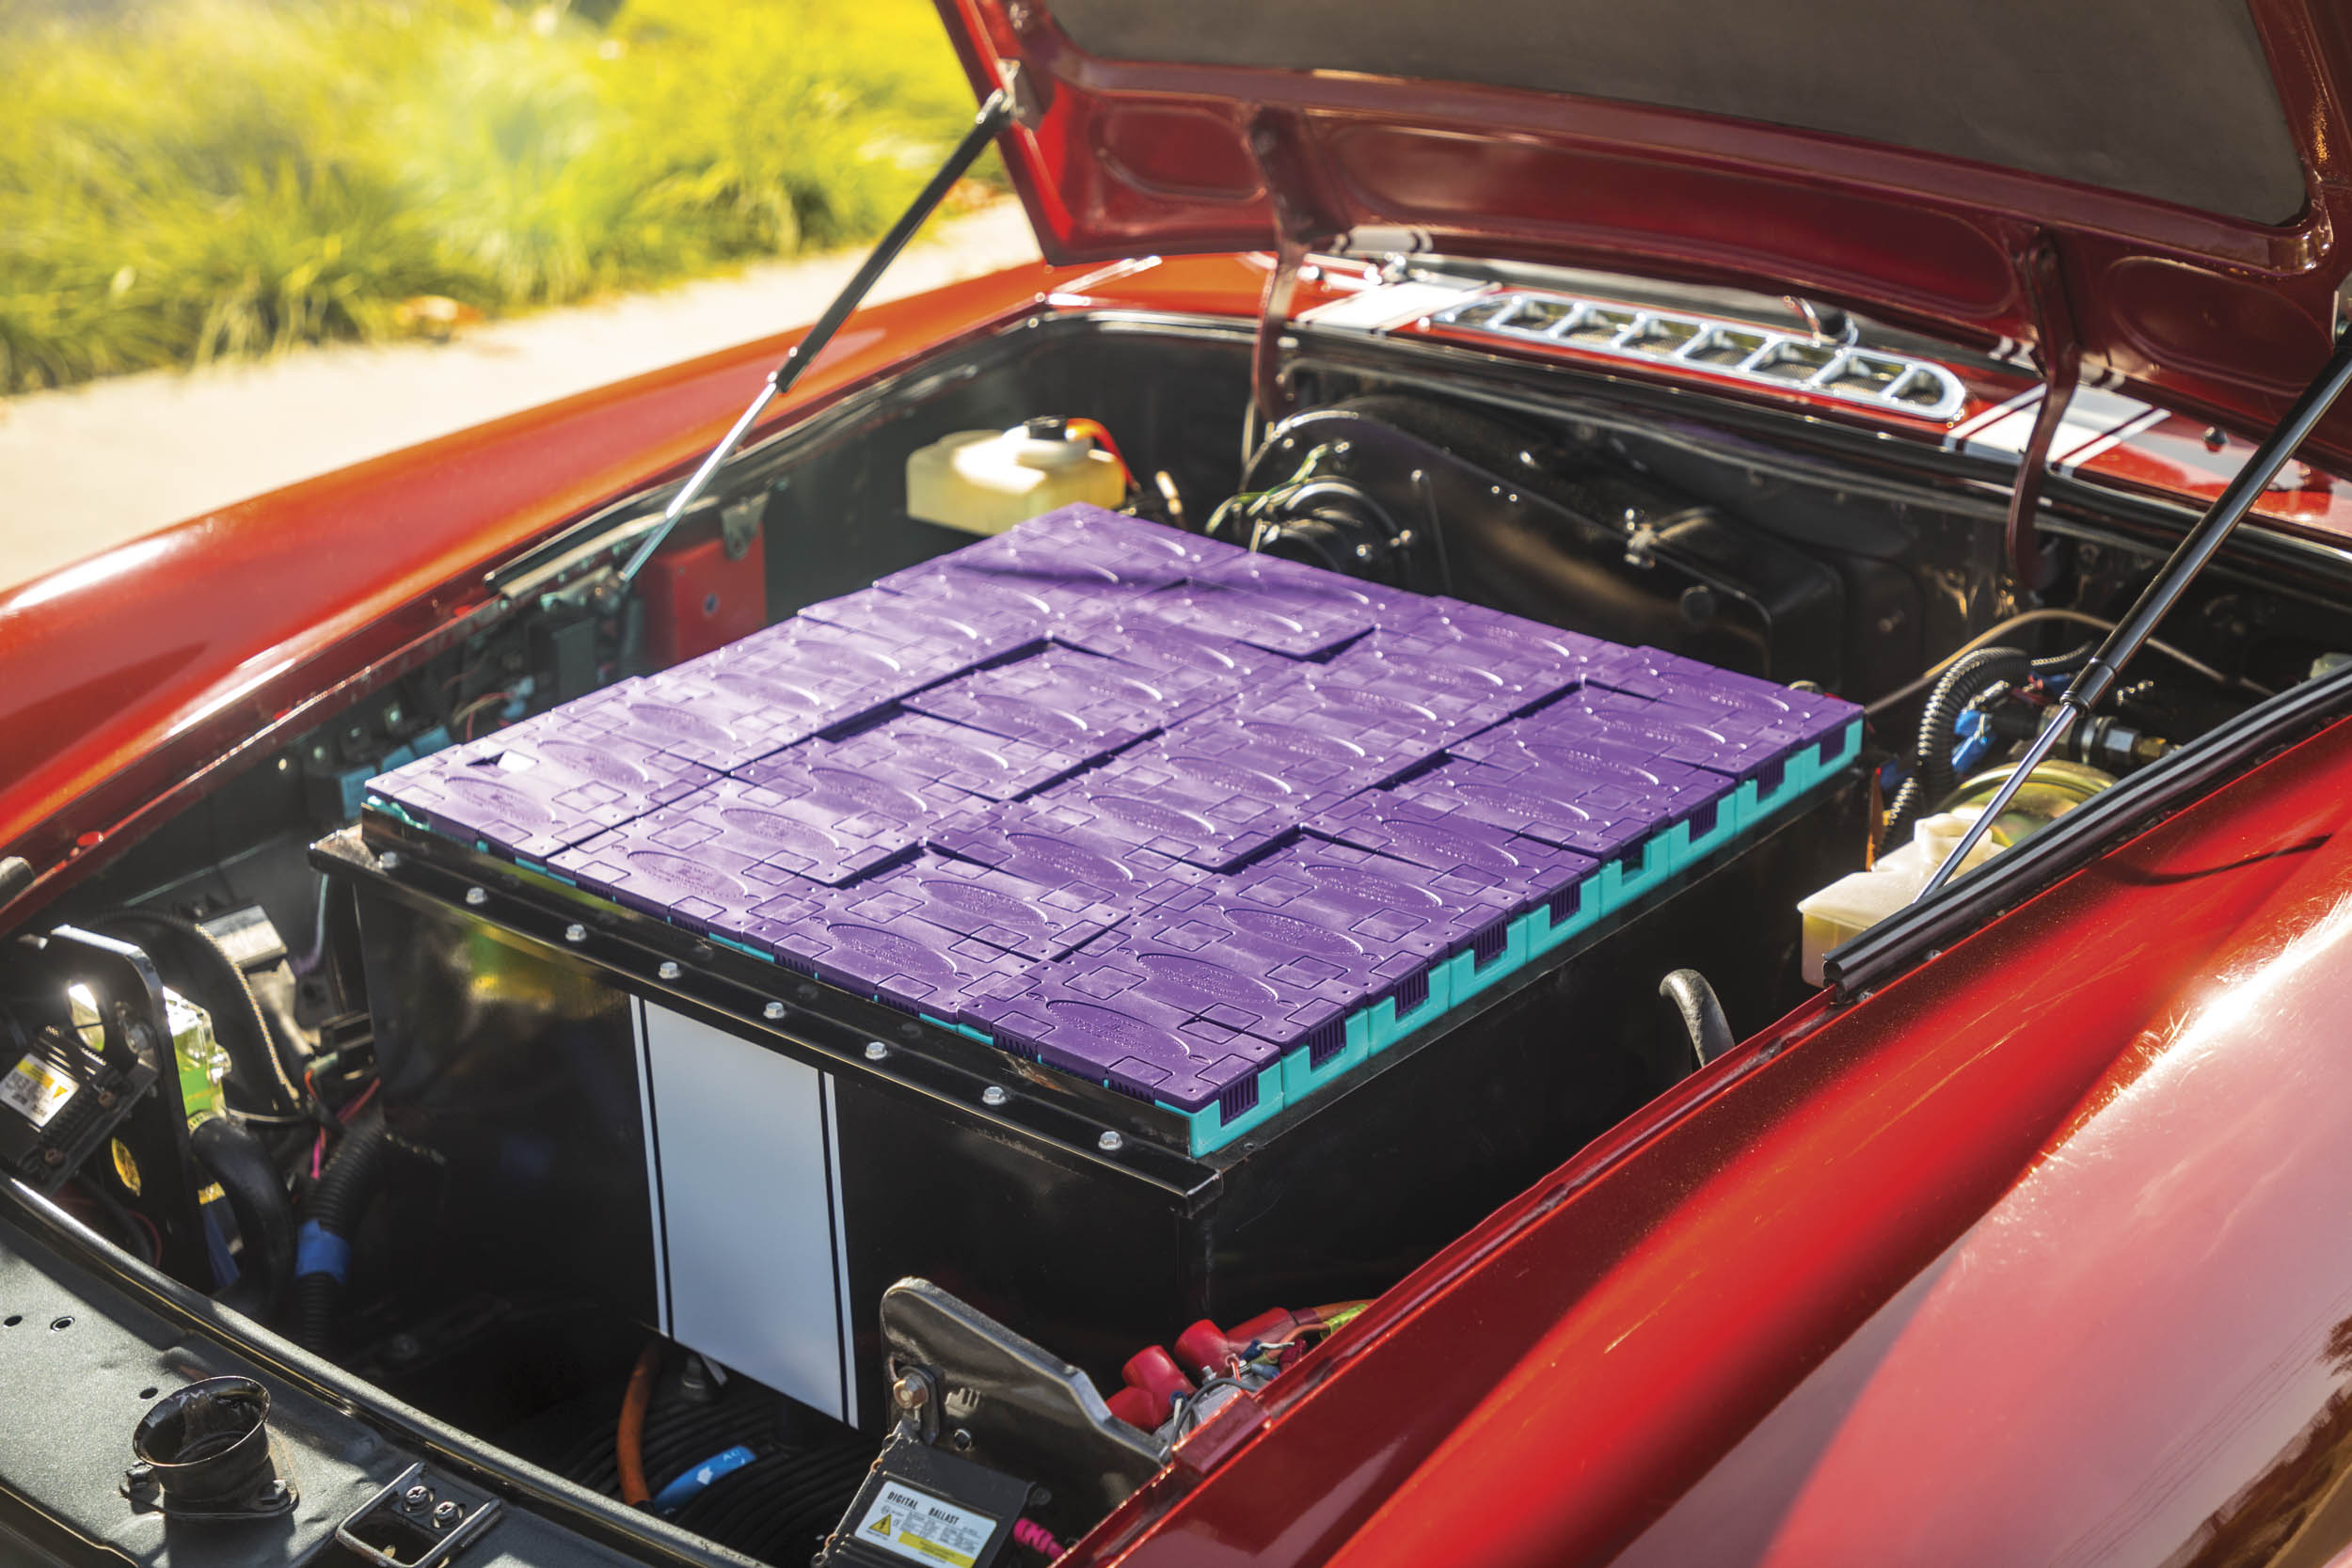 The open hood of Thomas Almodovar's MGB shows off its battery pack.